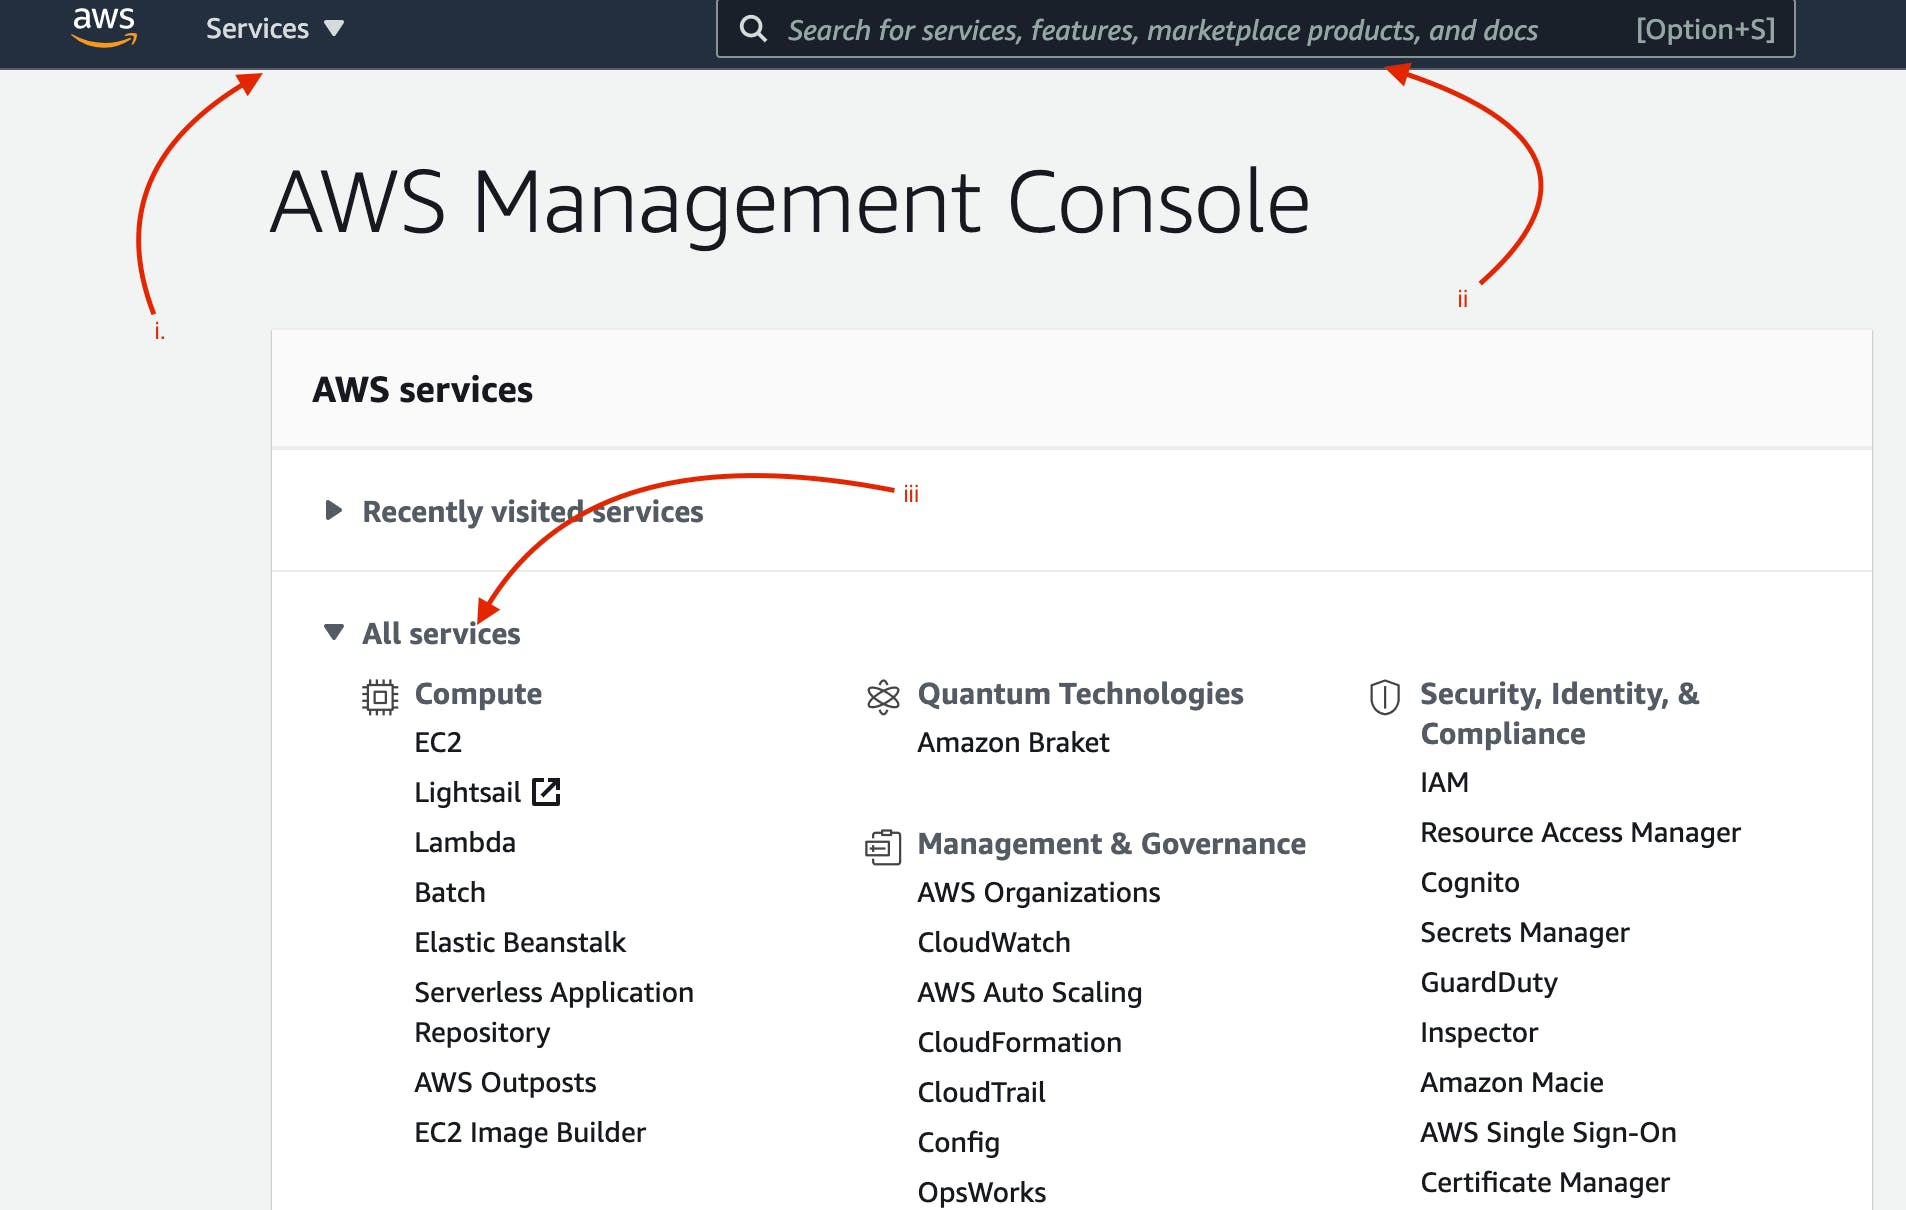 aws management console.png